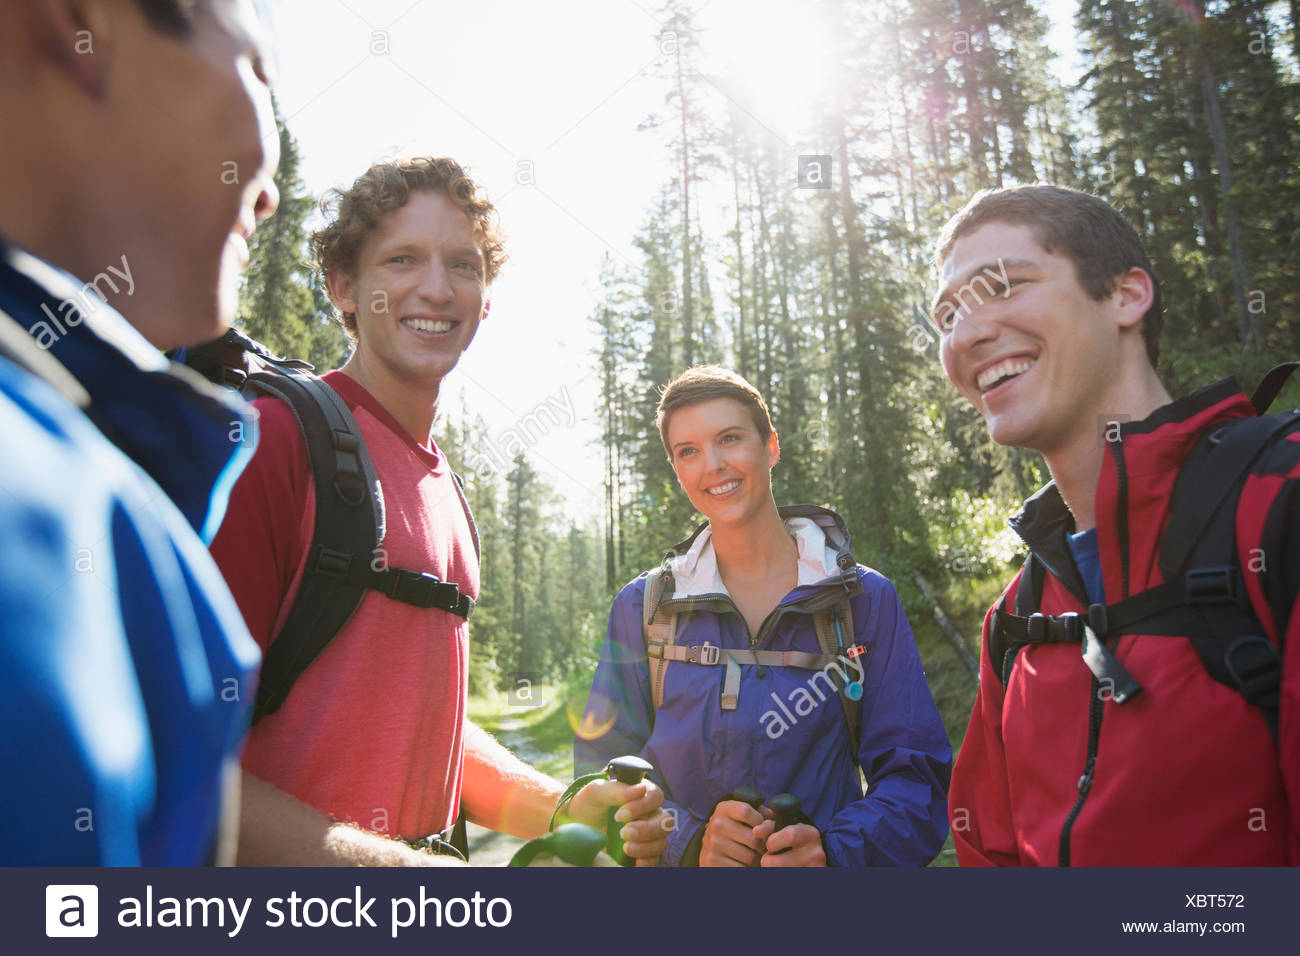 backpackers pausing for conversation on their hike - Stock Image